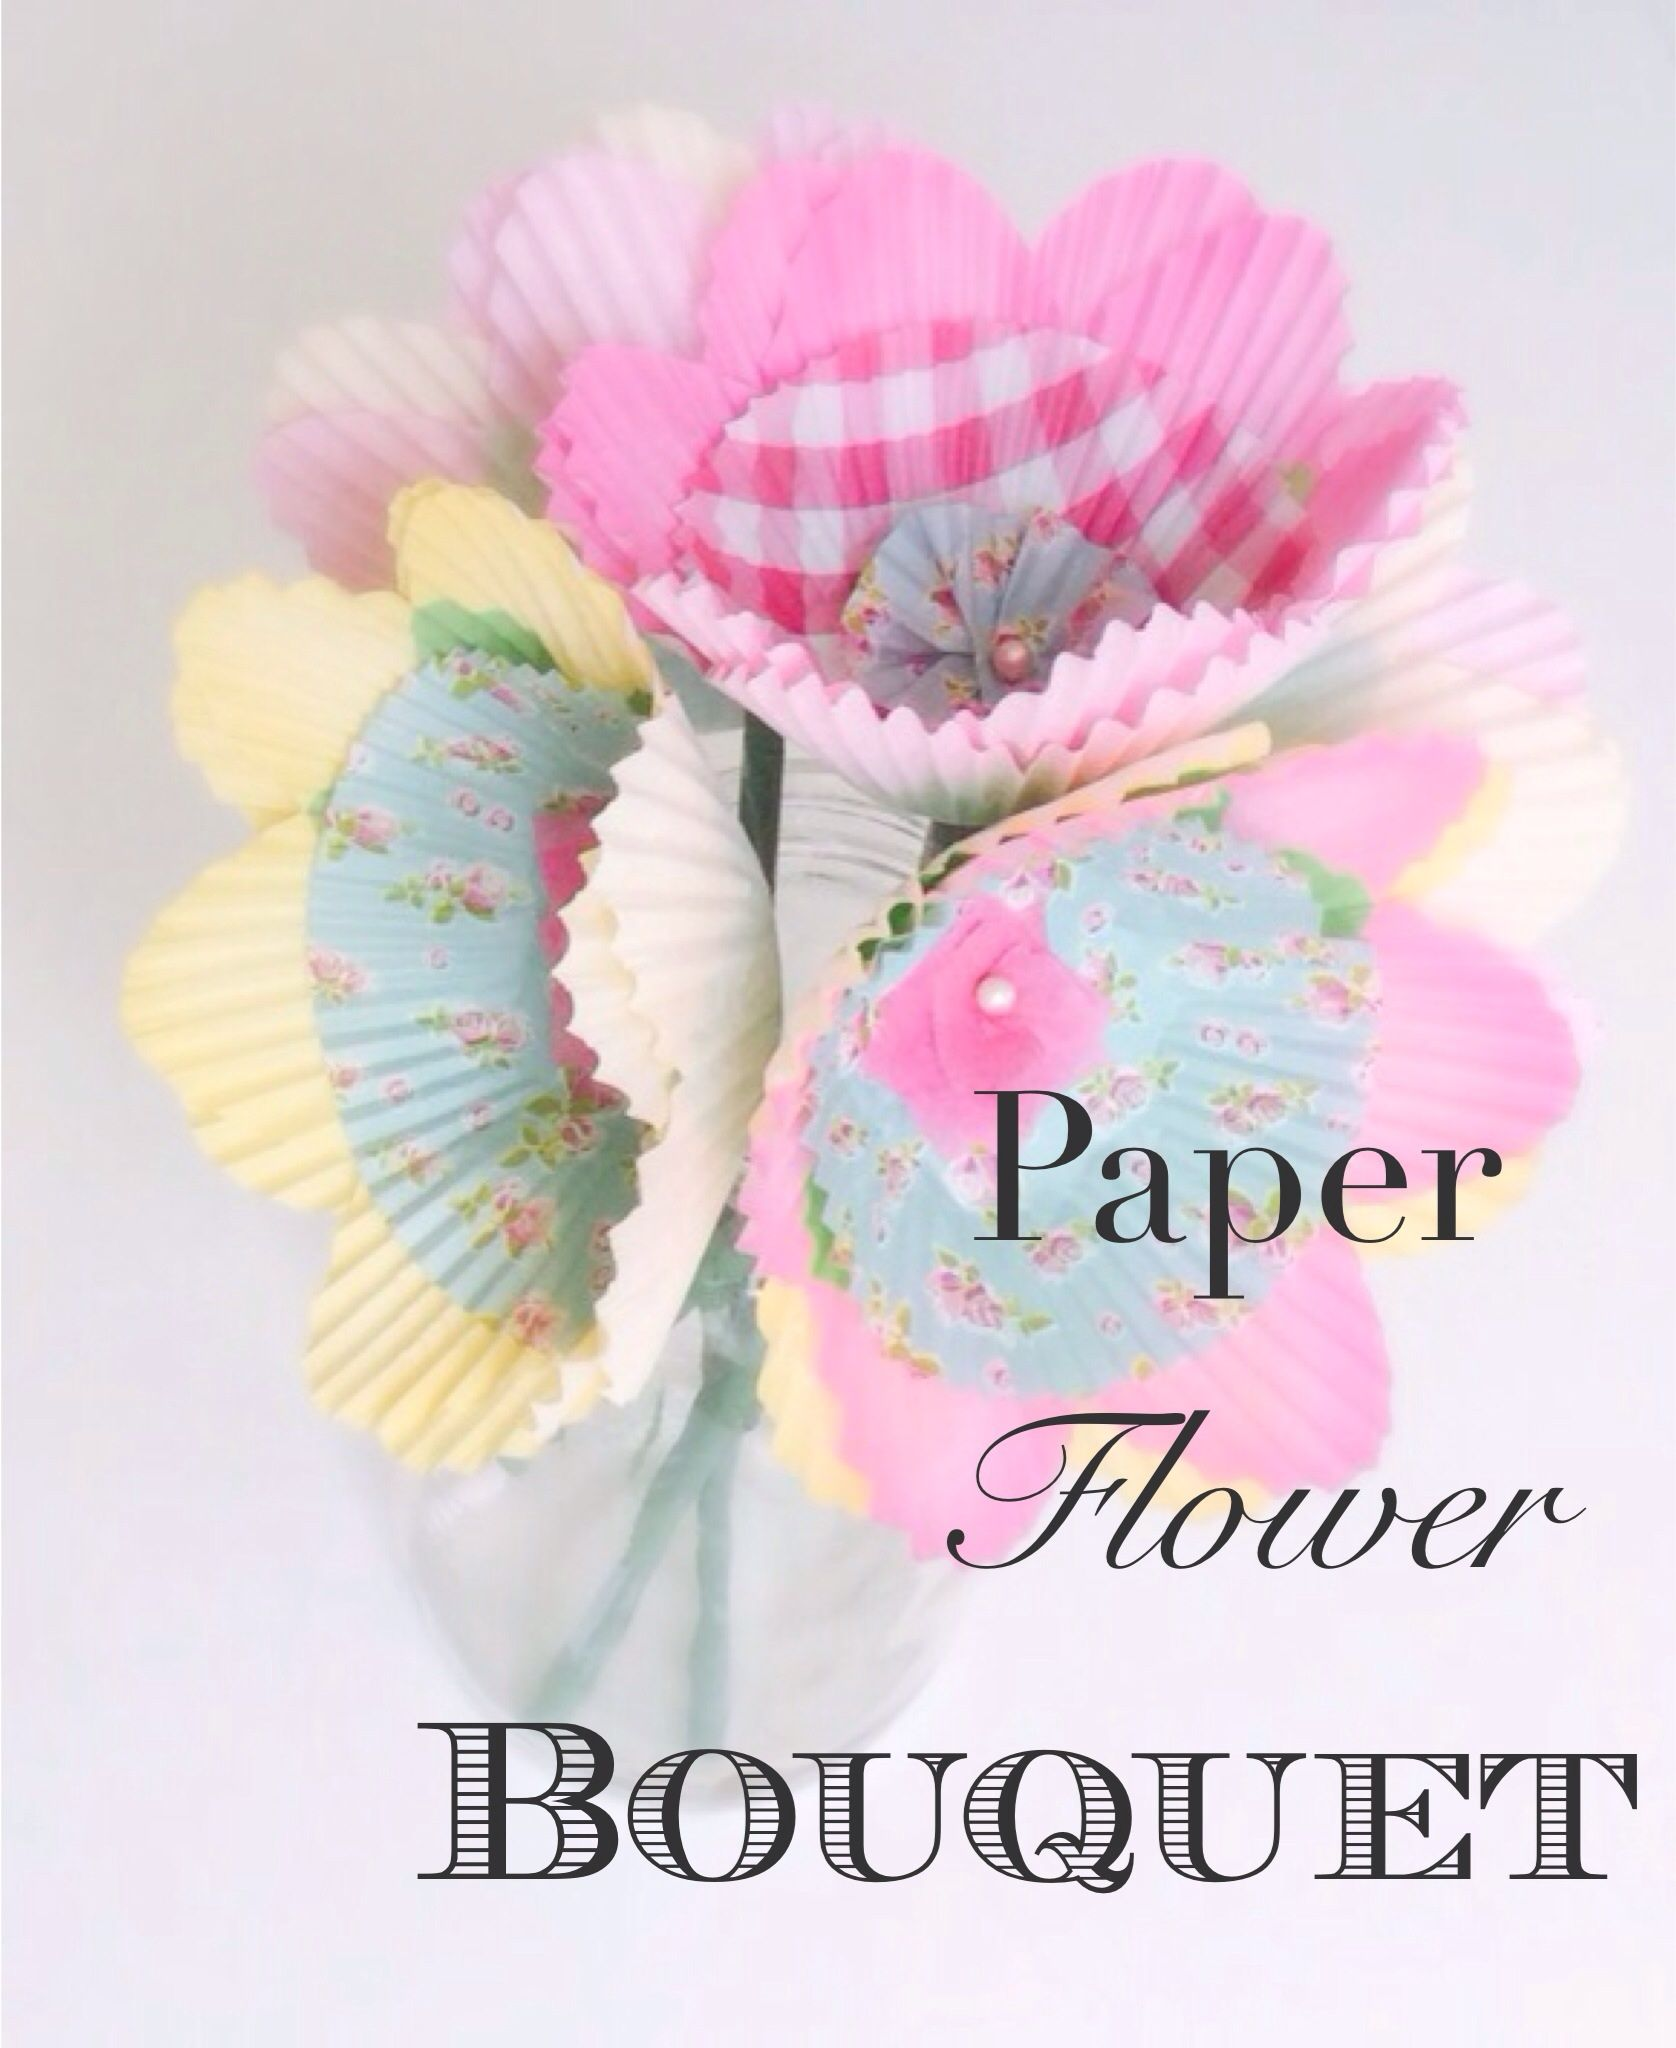 Paper flower bouquet diy crafts pinterest flower bouquets easy paper craft great idea for a fun rainy day paper flower bouquet izmirmasajfo